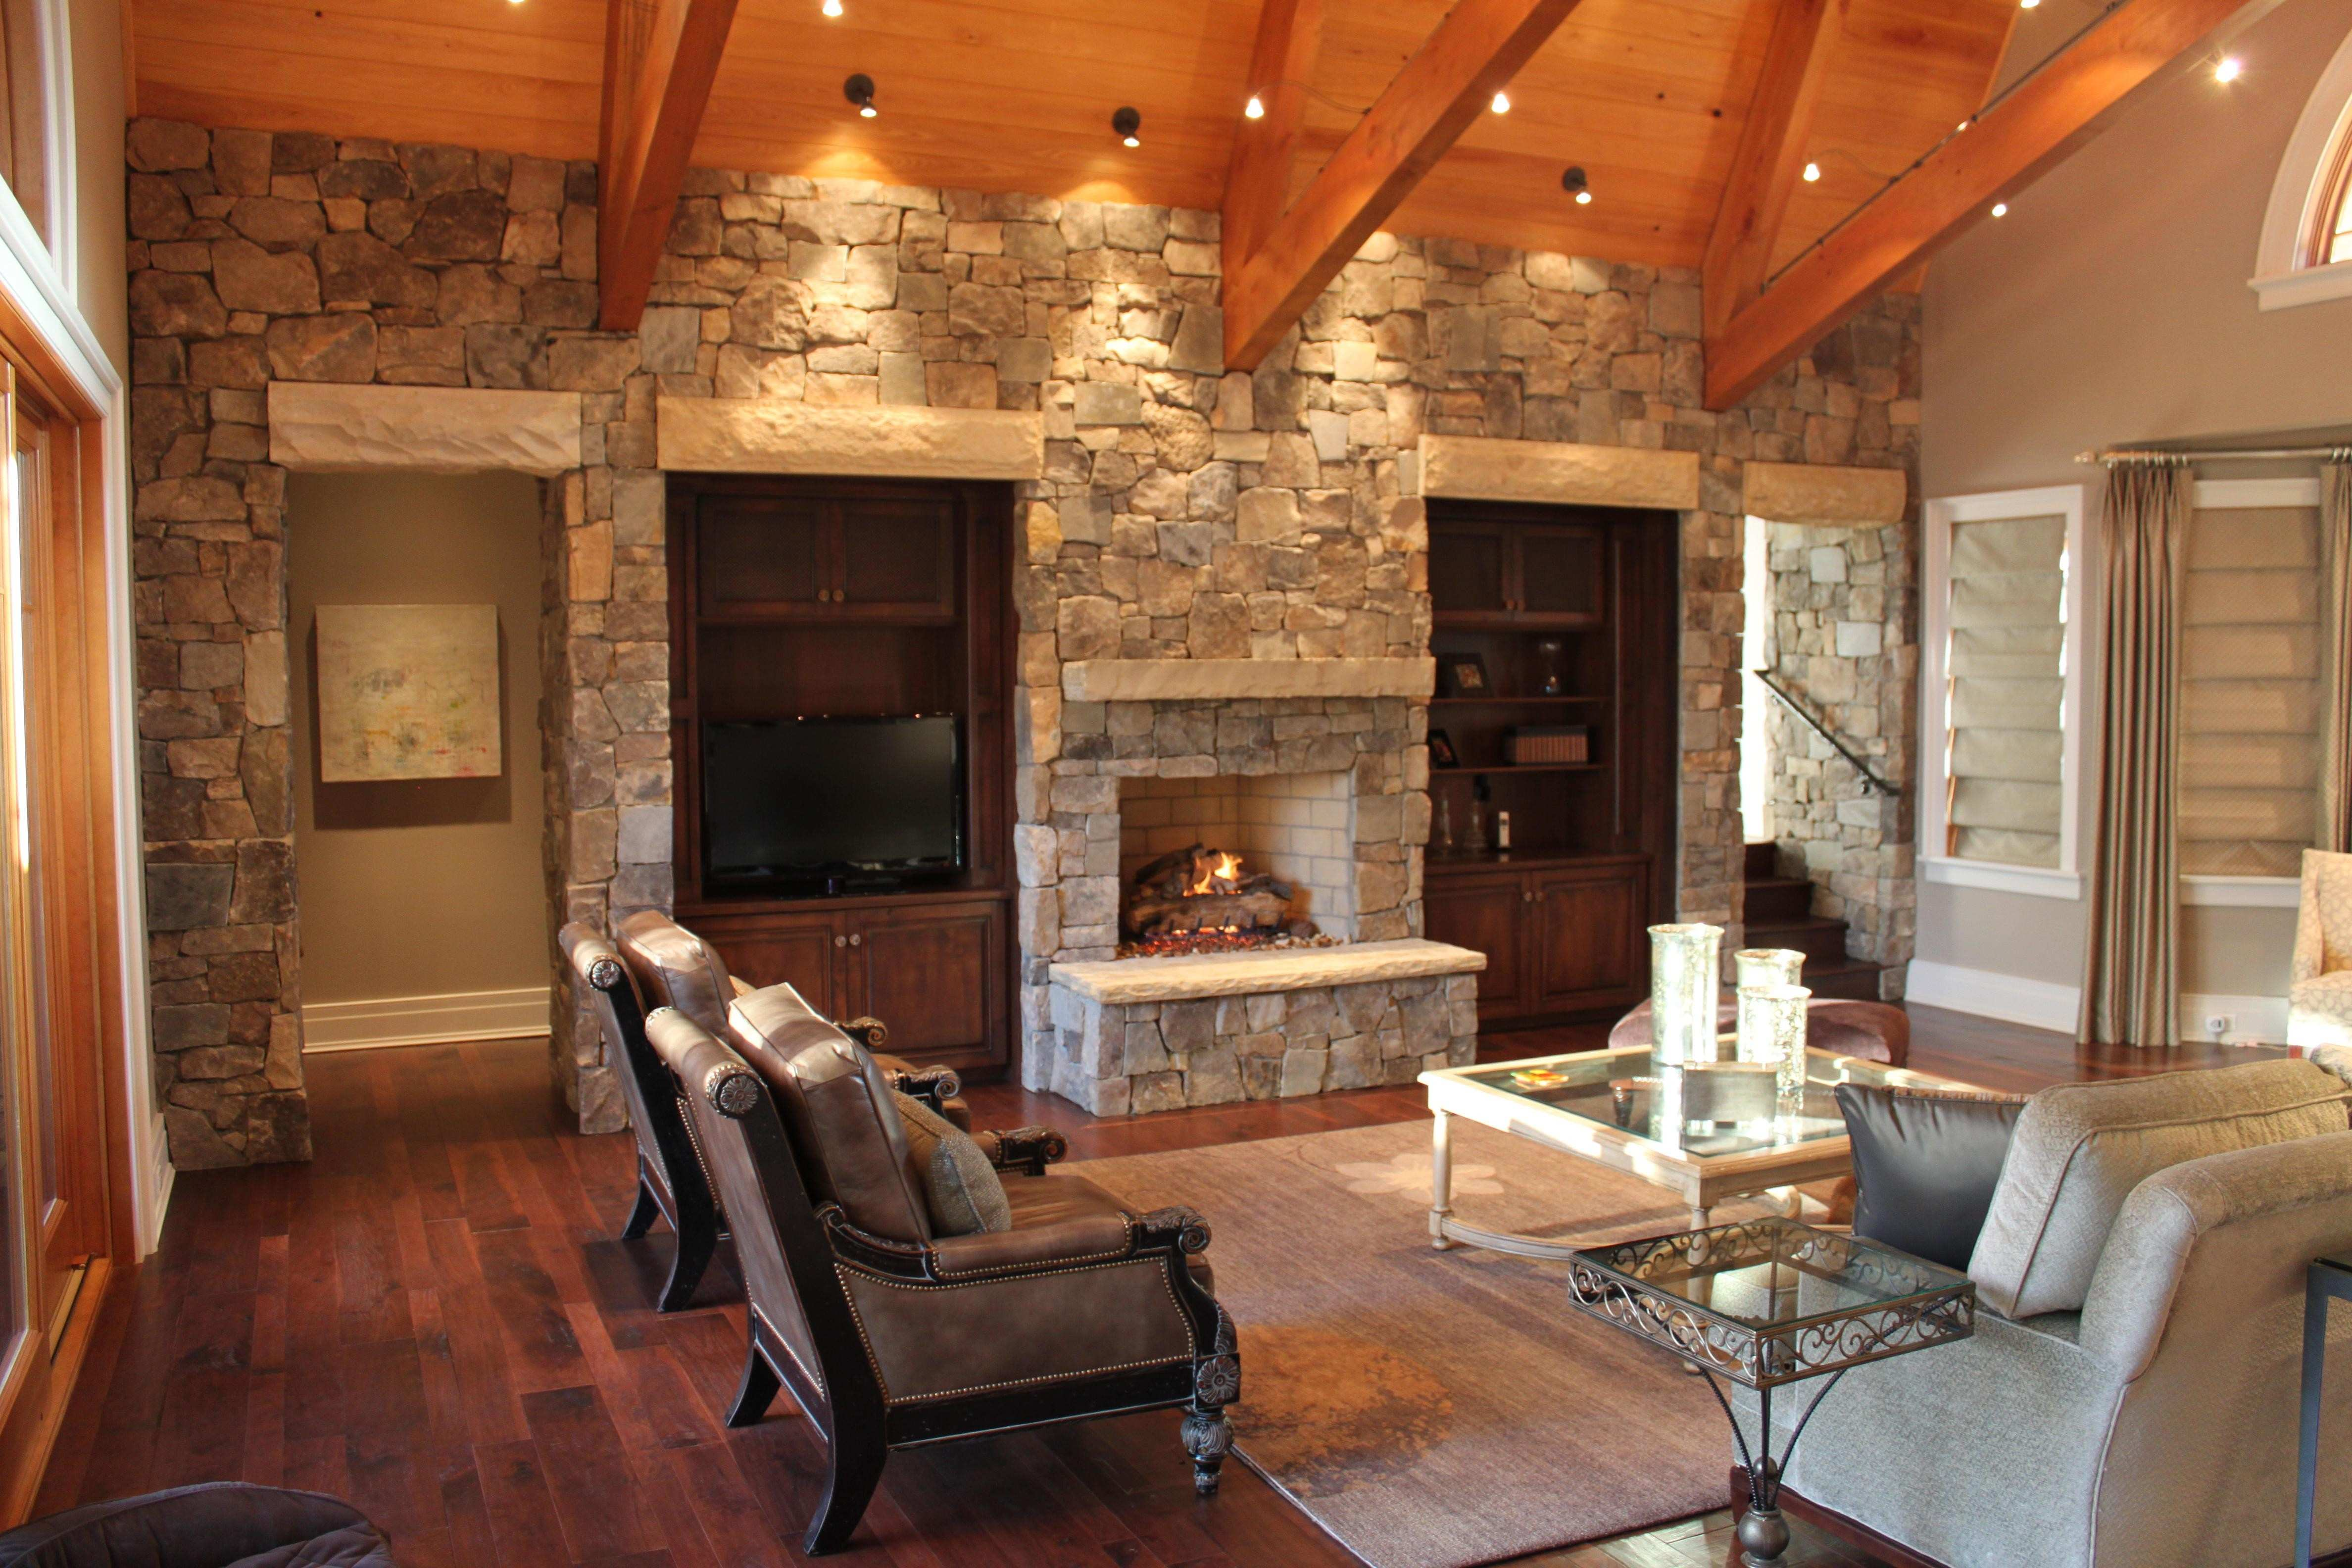 Rustic Fireplace and Wall Decor for Christmas